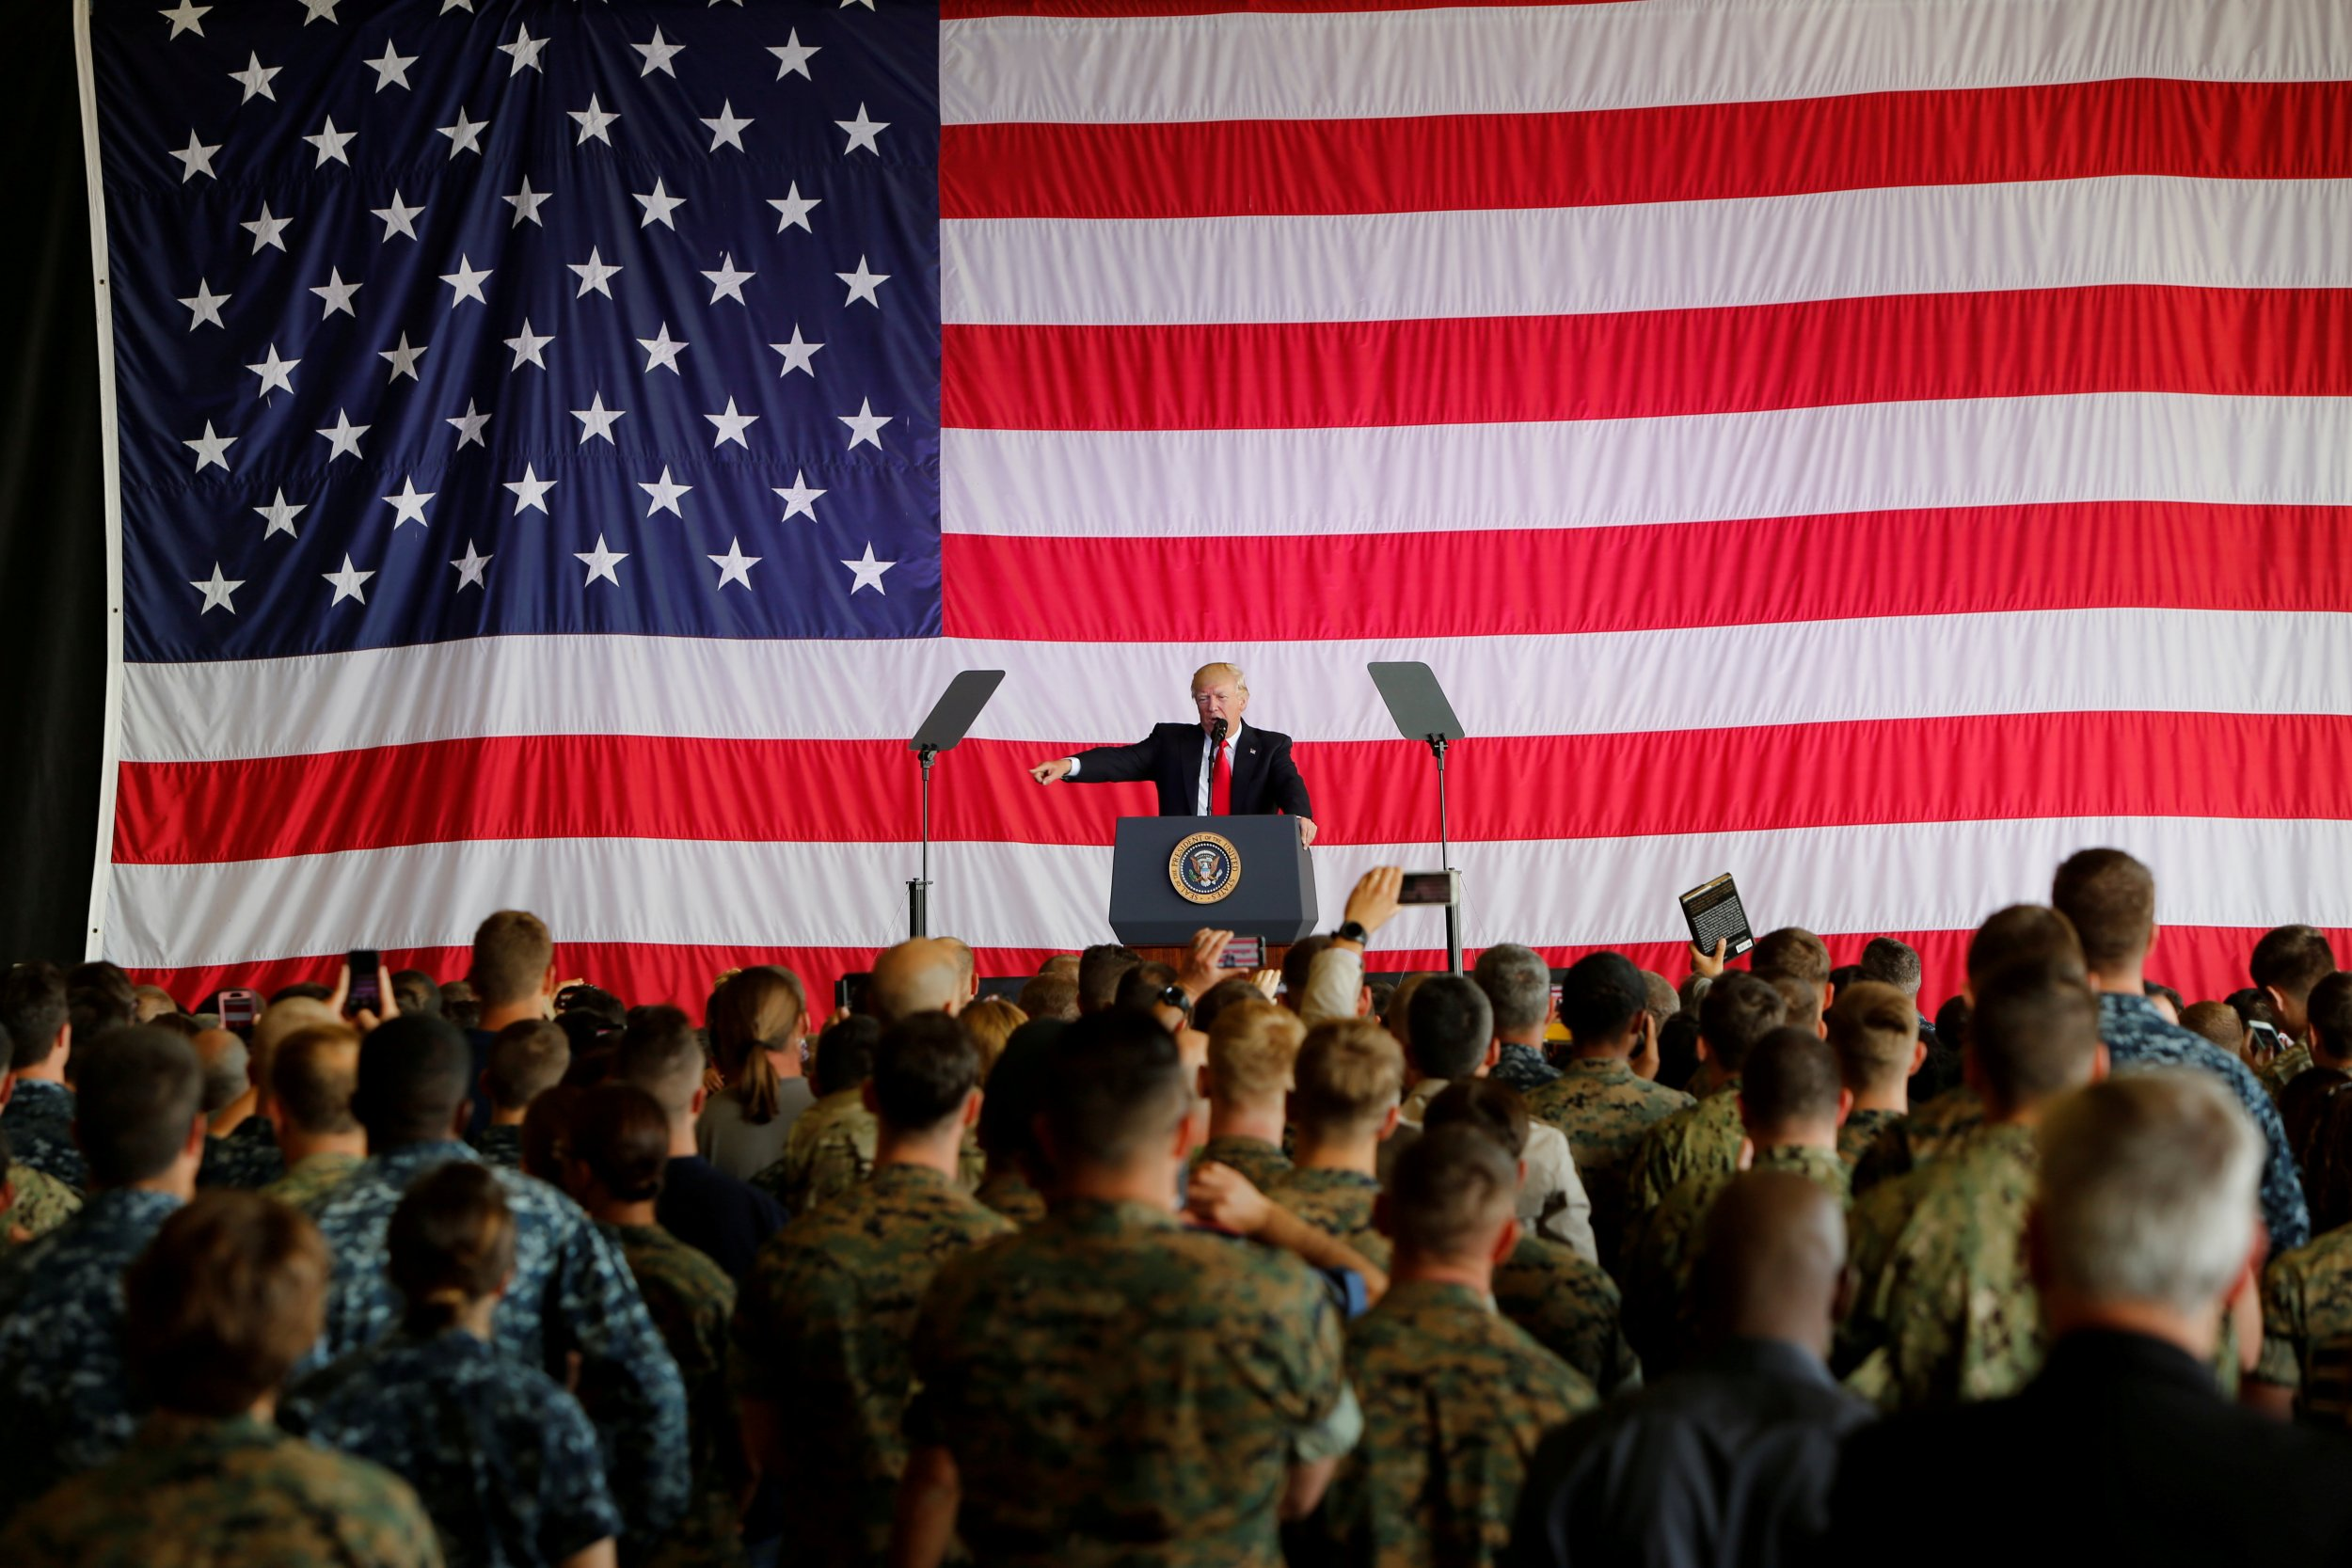 Trump bans transgenders from serving in military